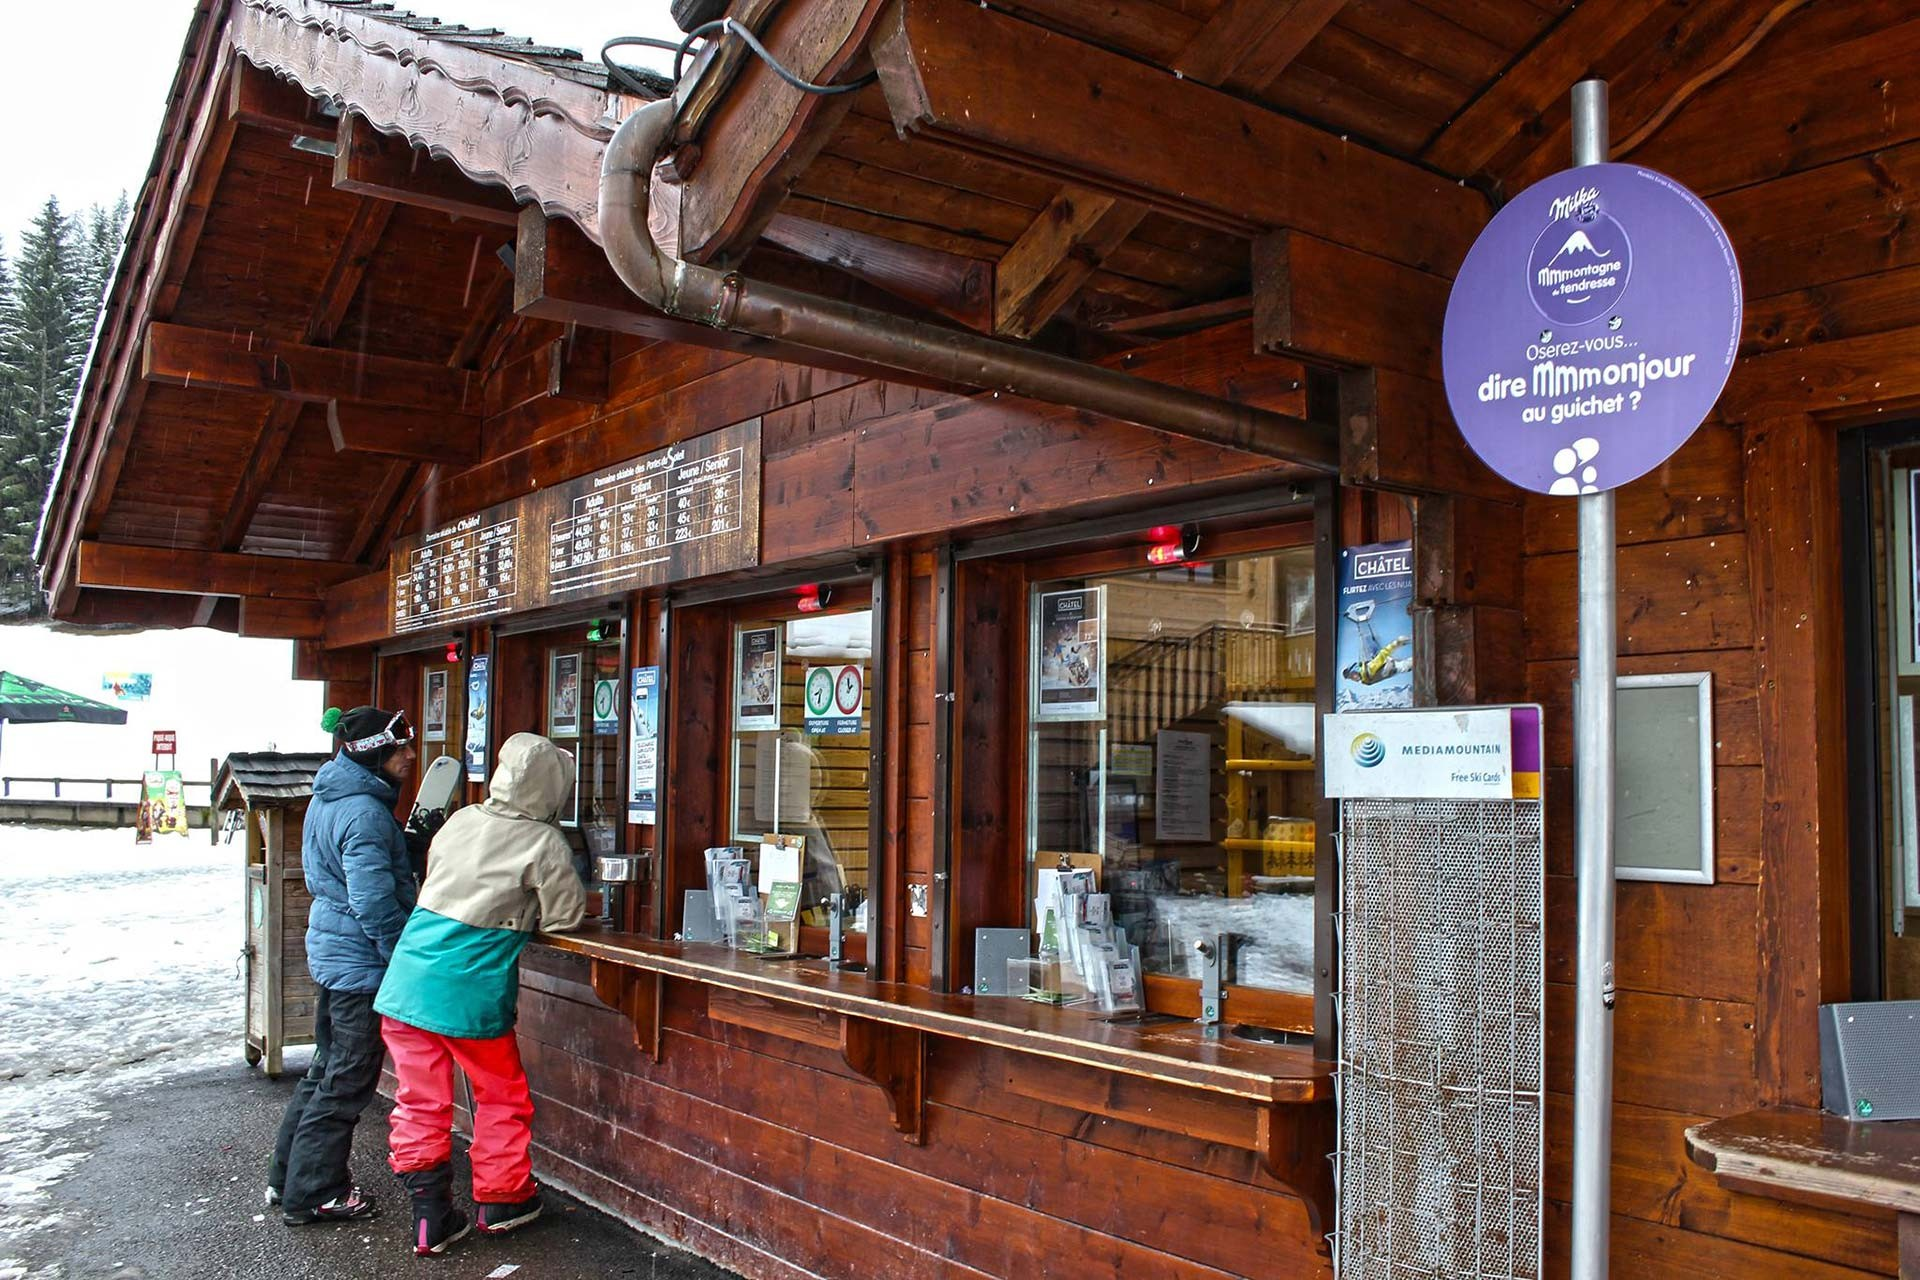 Where to buy your ski passes?